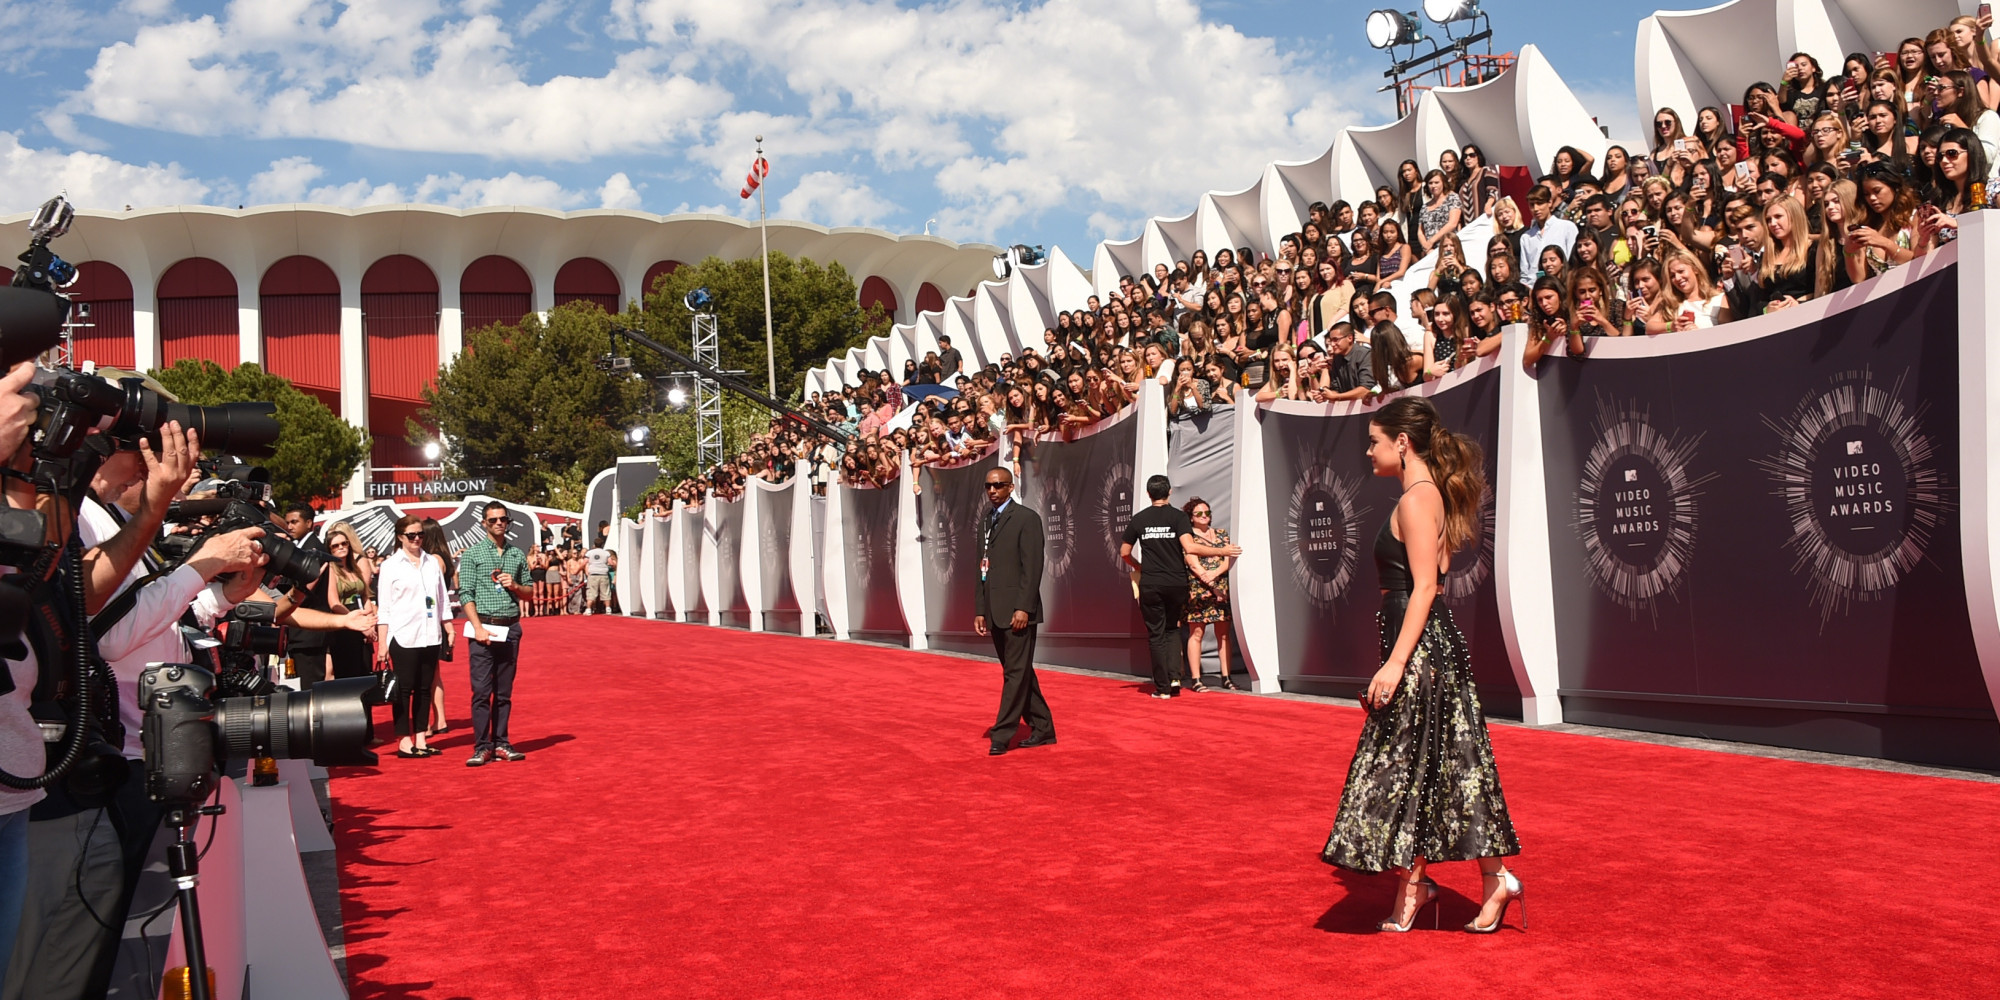 Vma 2014 Red Carpet Has Celebs Painting Los Angeles All